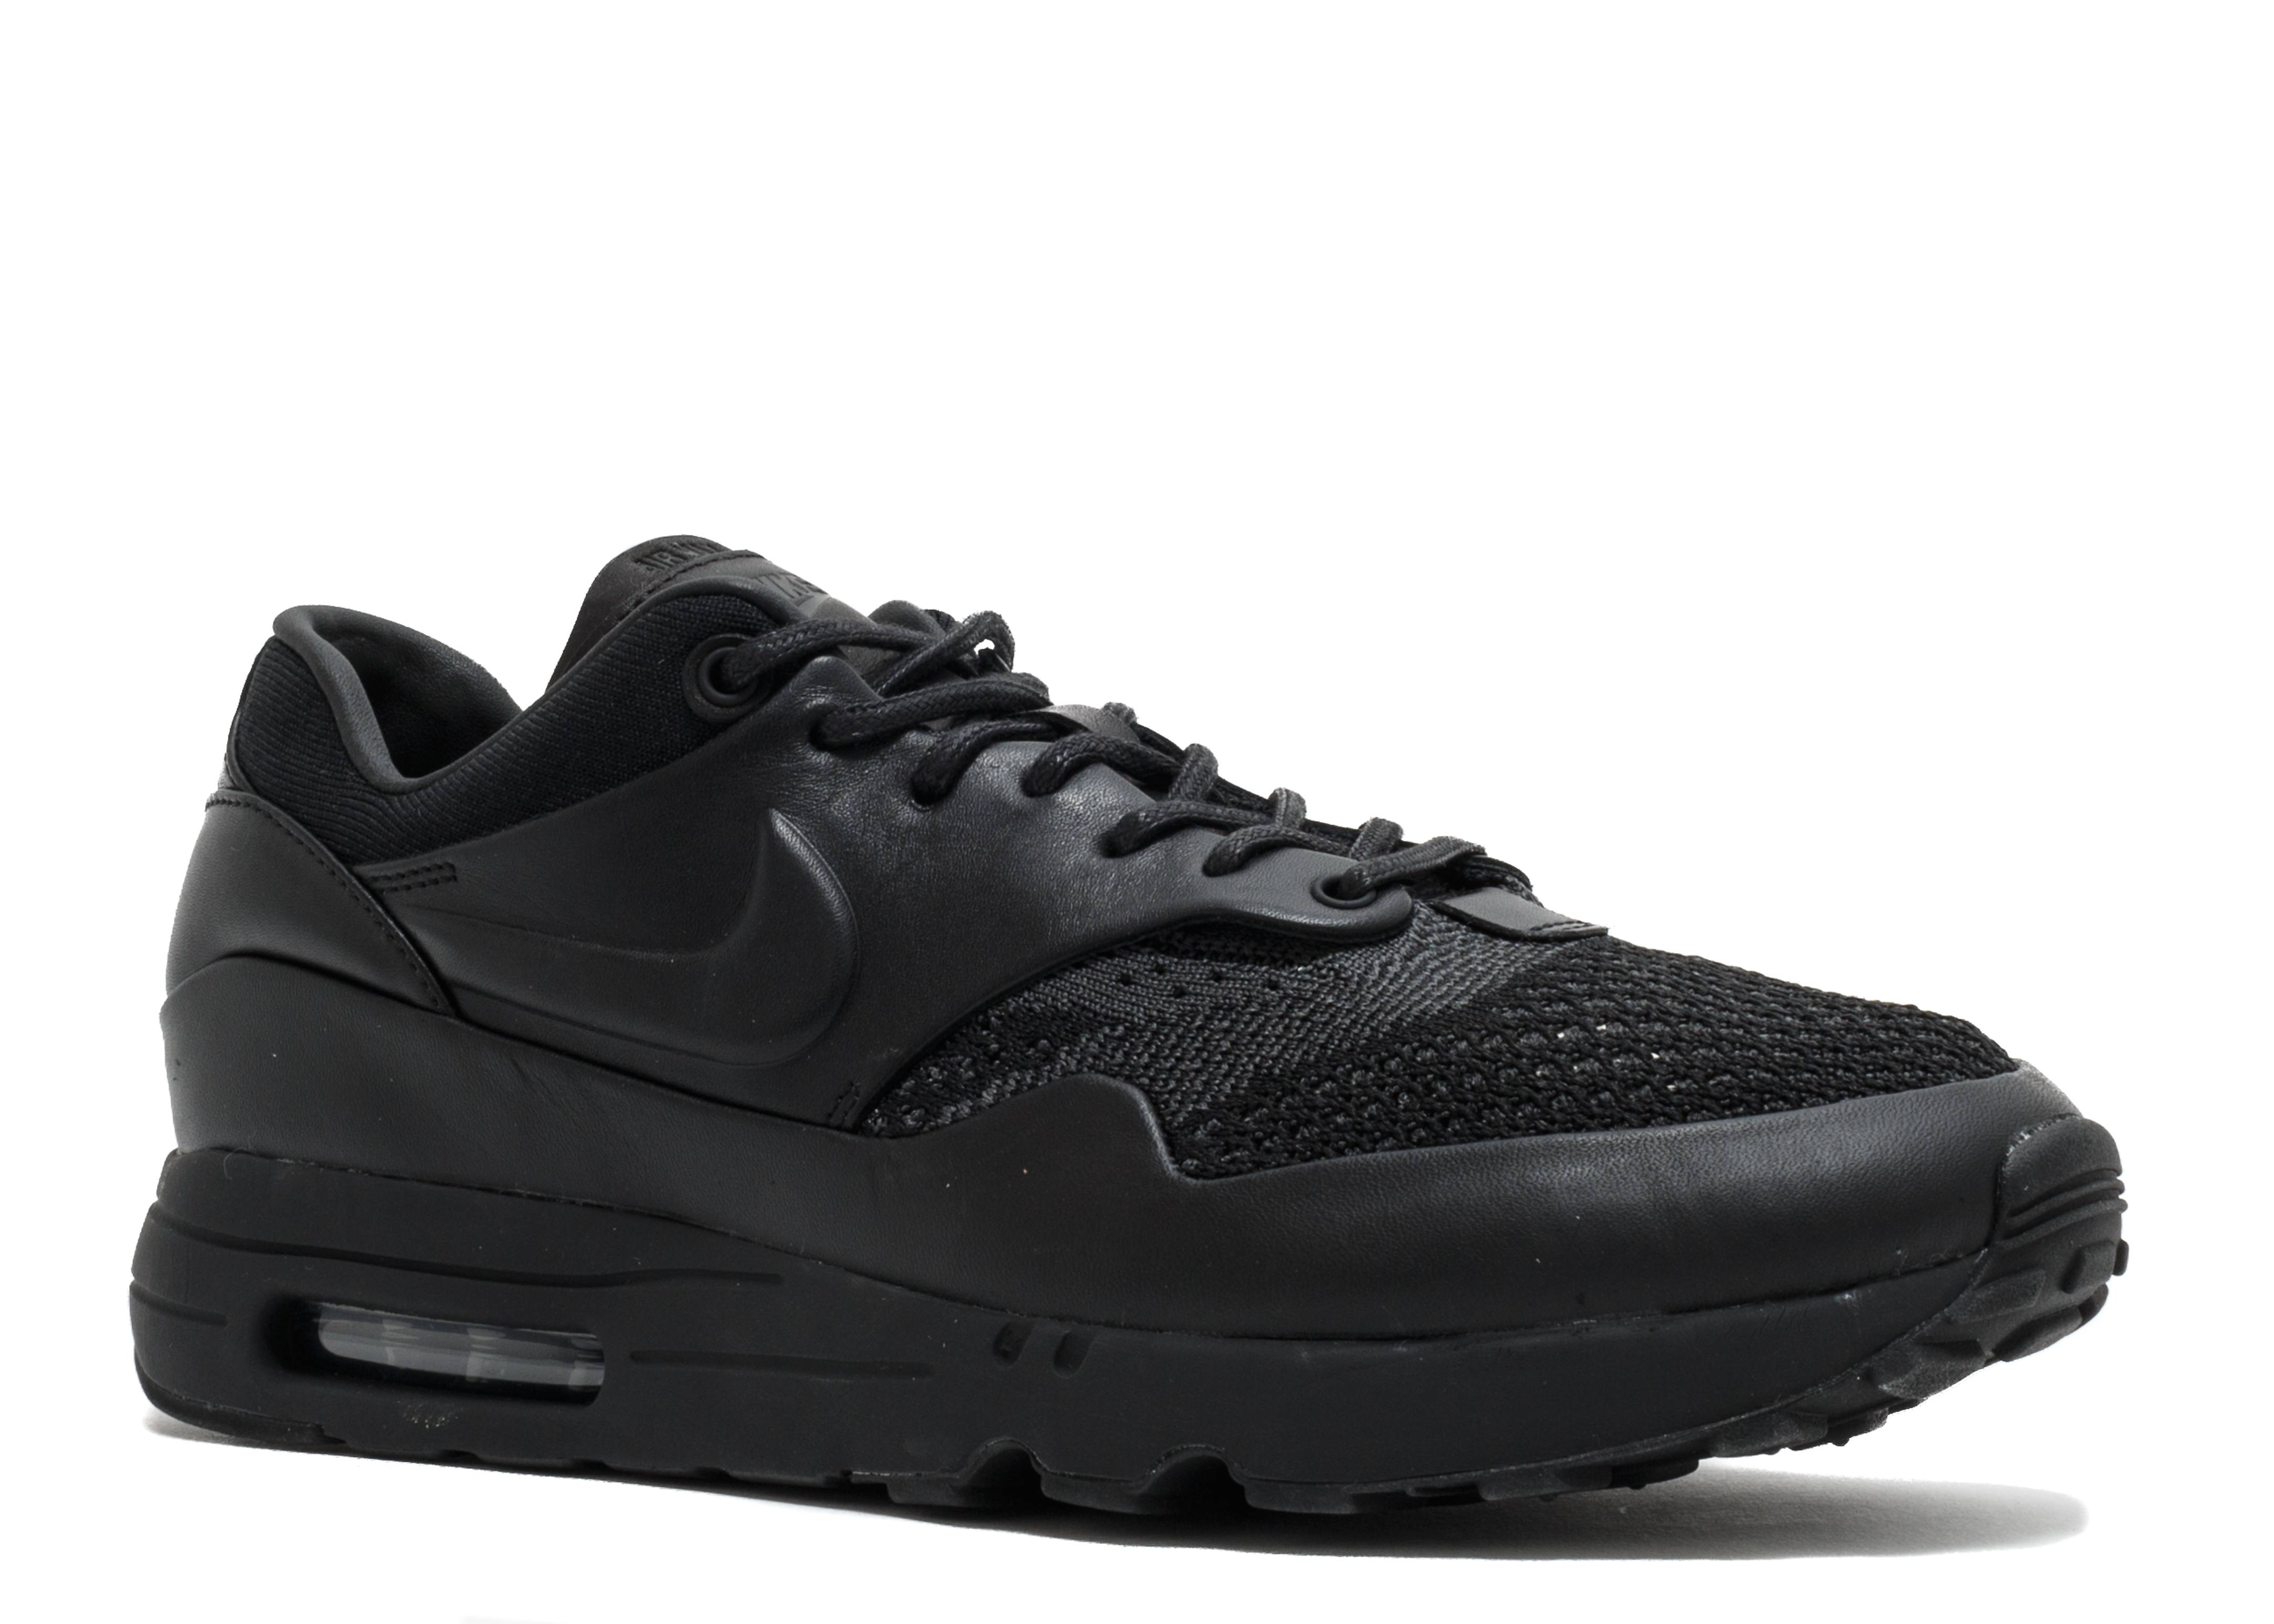 nike air max 1 flyknit royal nike 923005 001 black black anthracite flight club. Black Bedroom Furniture Sets. Home Design Ideas